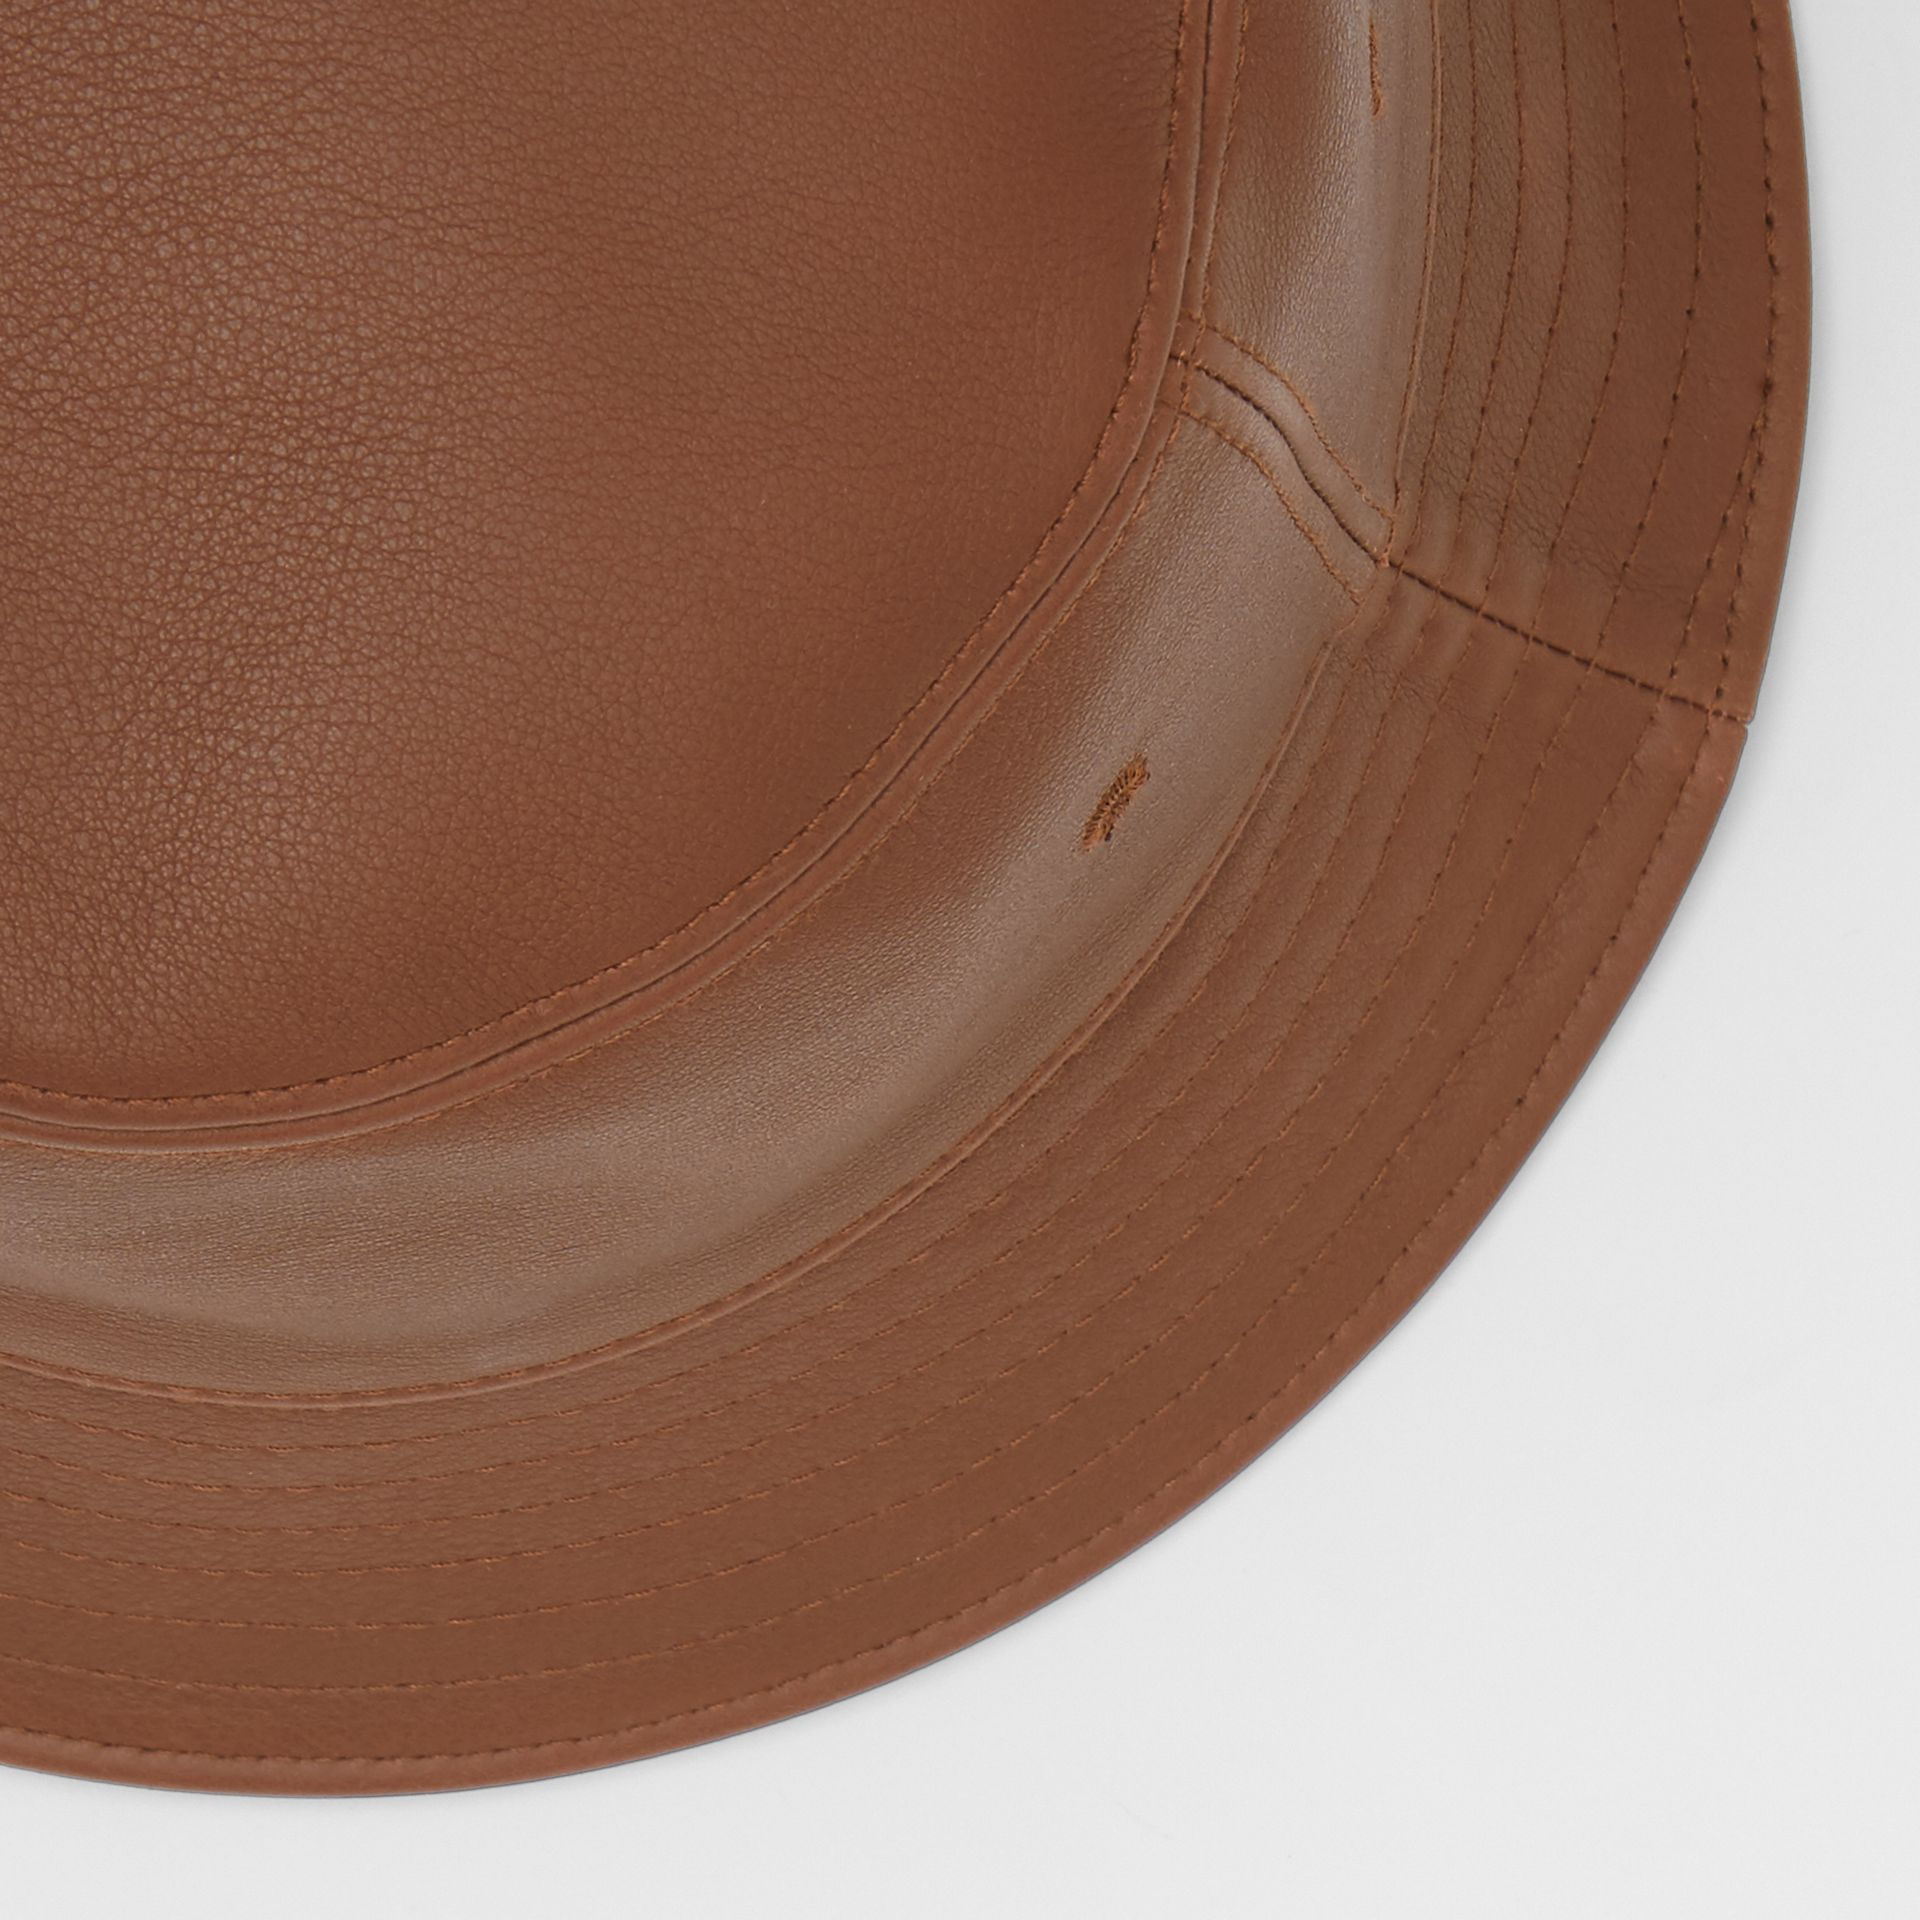 Logo Detail Leather Bucket Hat in Tan | Burberry United States - gallery image 1